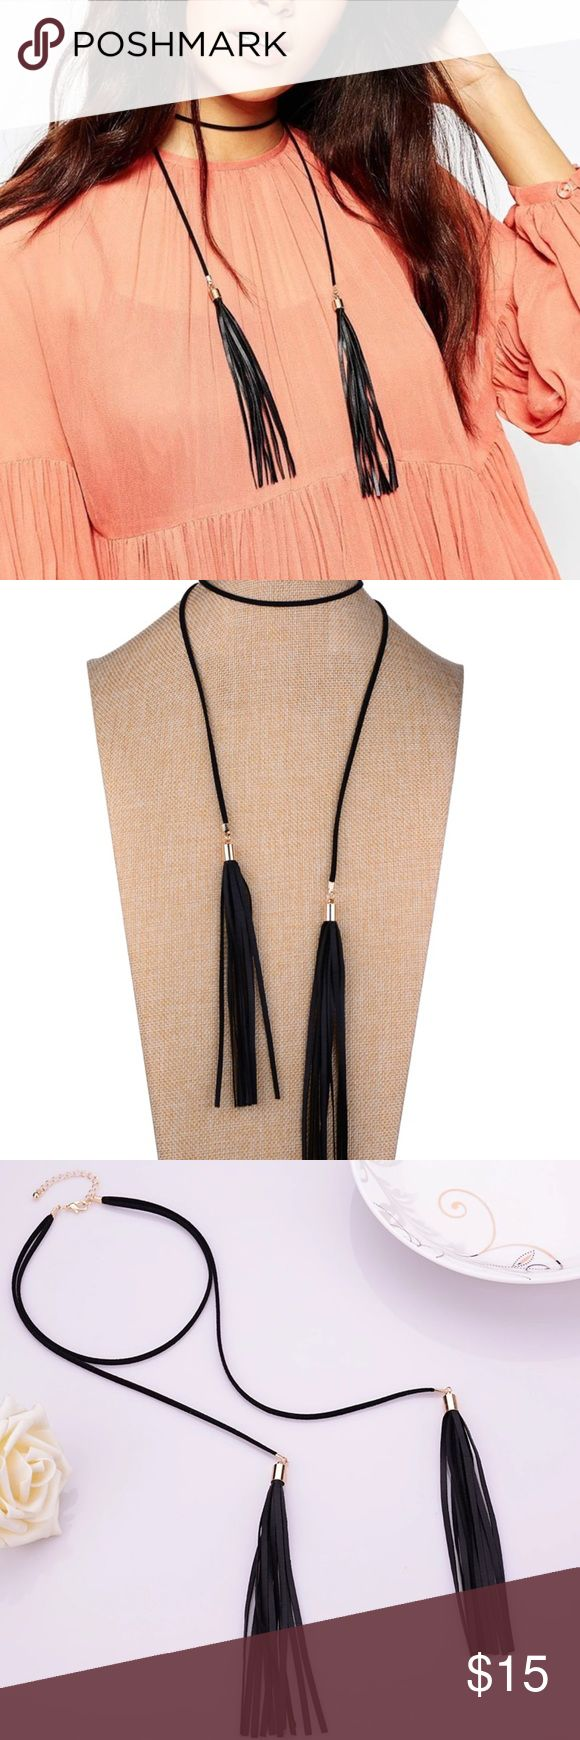 Adjustable Tassel choker necklace Adjustable Black Tassel Chocker necklace Jewelry Necklaces